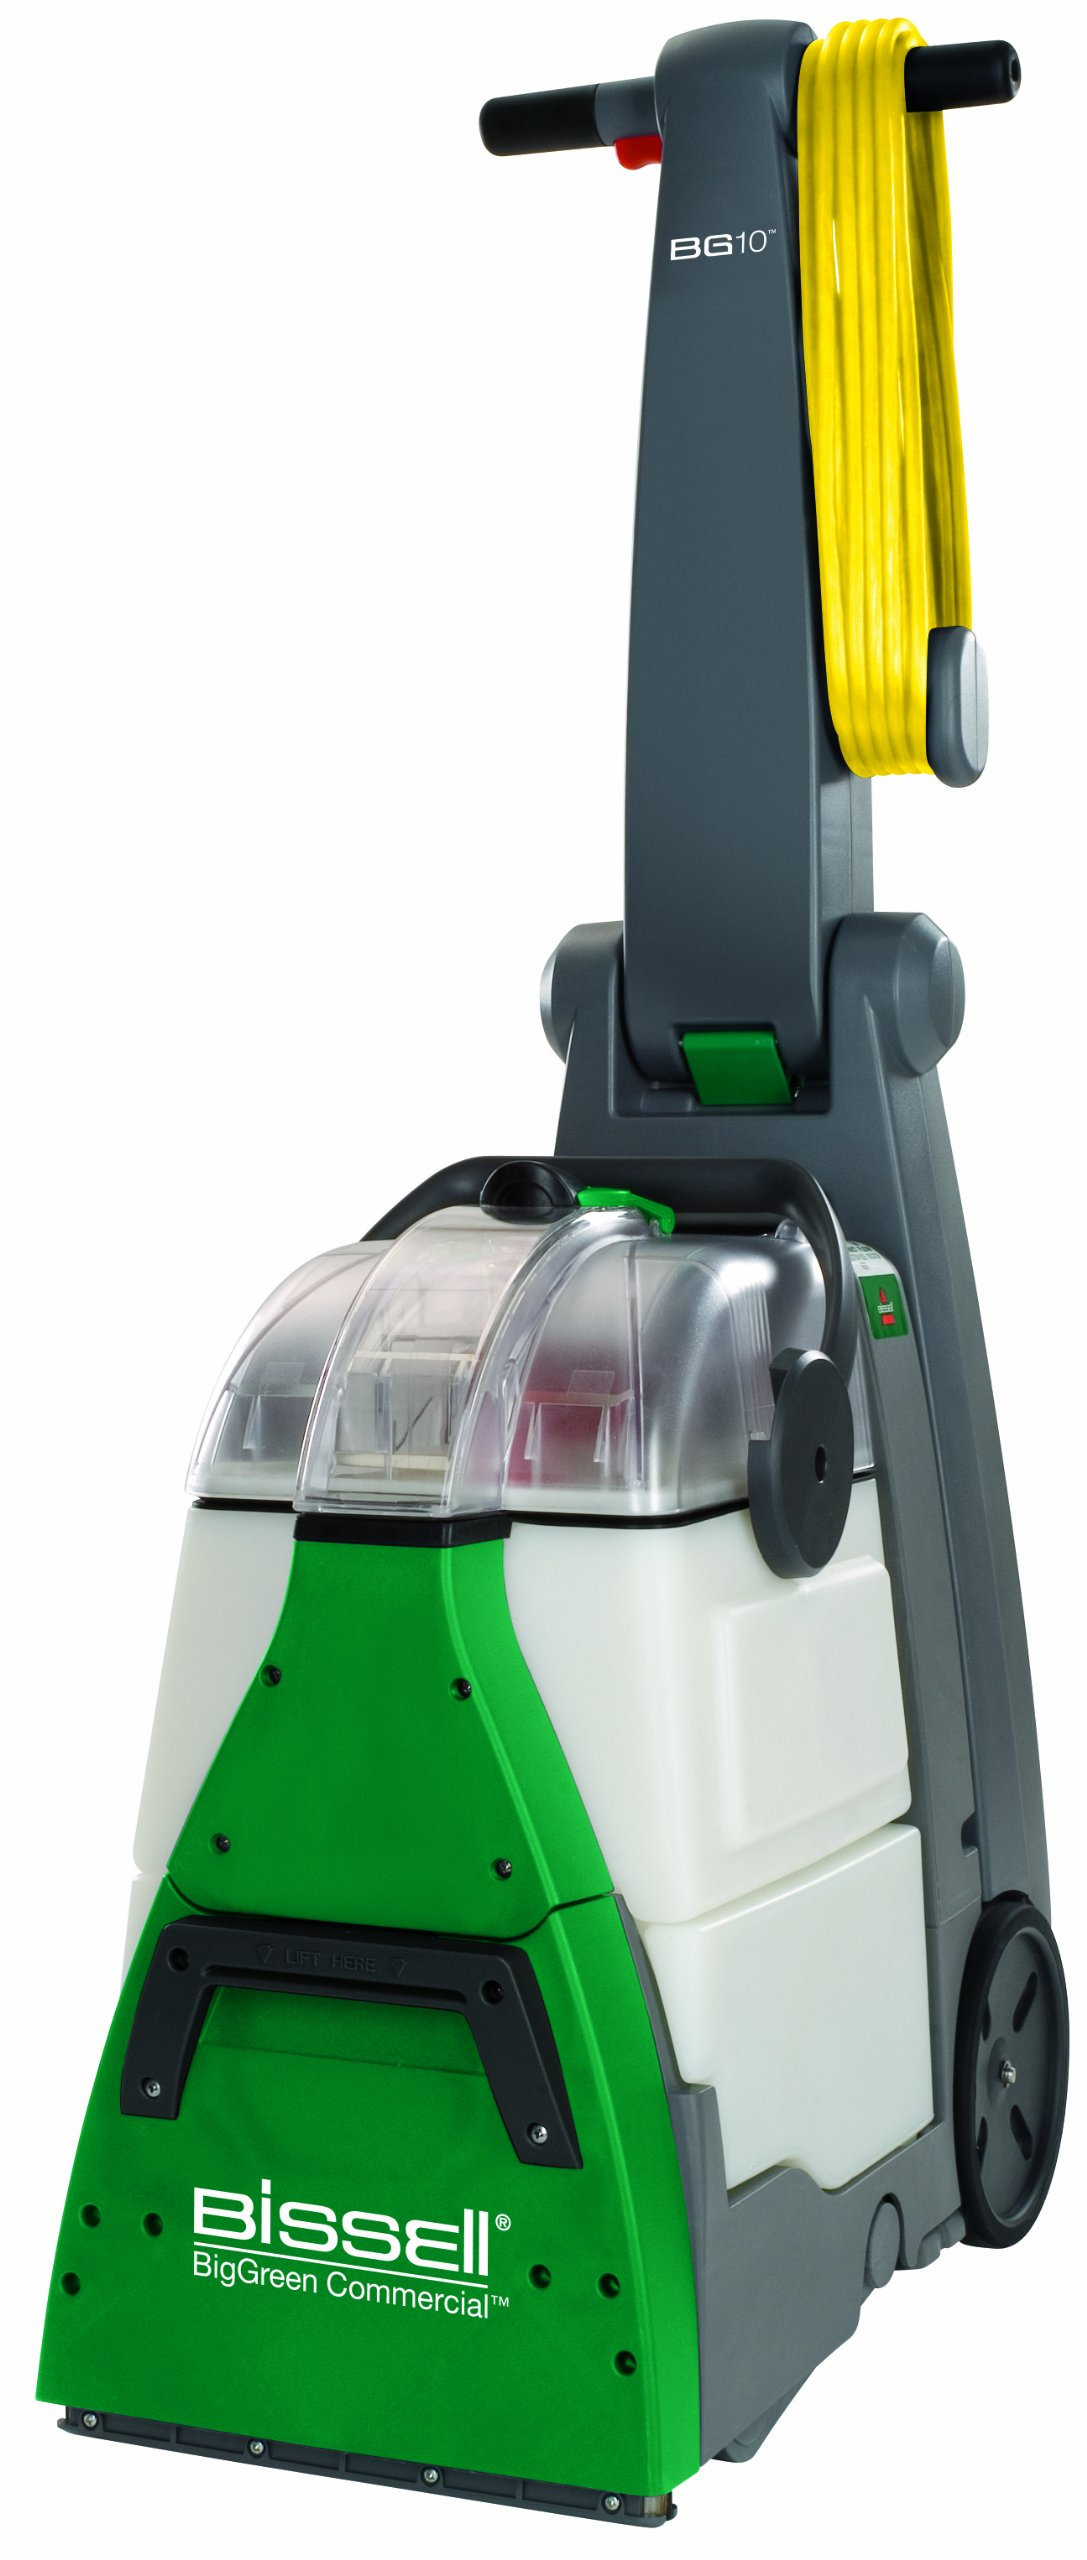 Bissell BigGreen Commercial BG10 Deep Cleaning 2 Motor Extracter Machine by Bissell